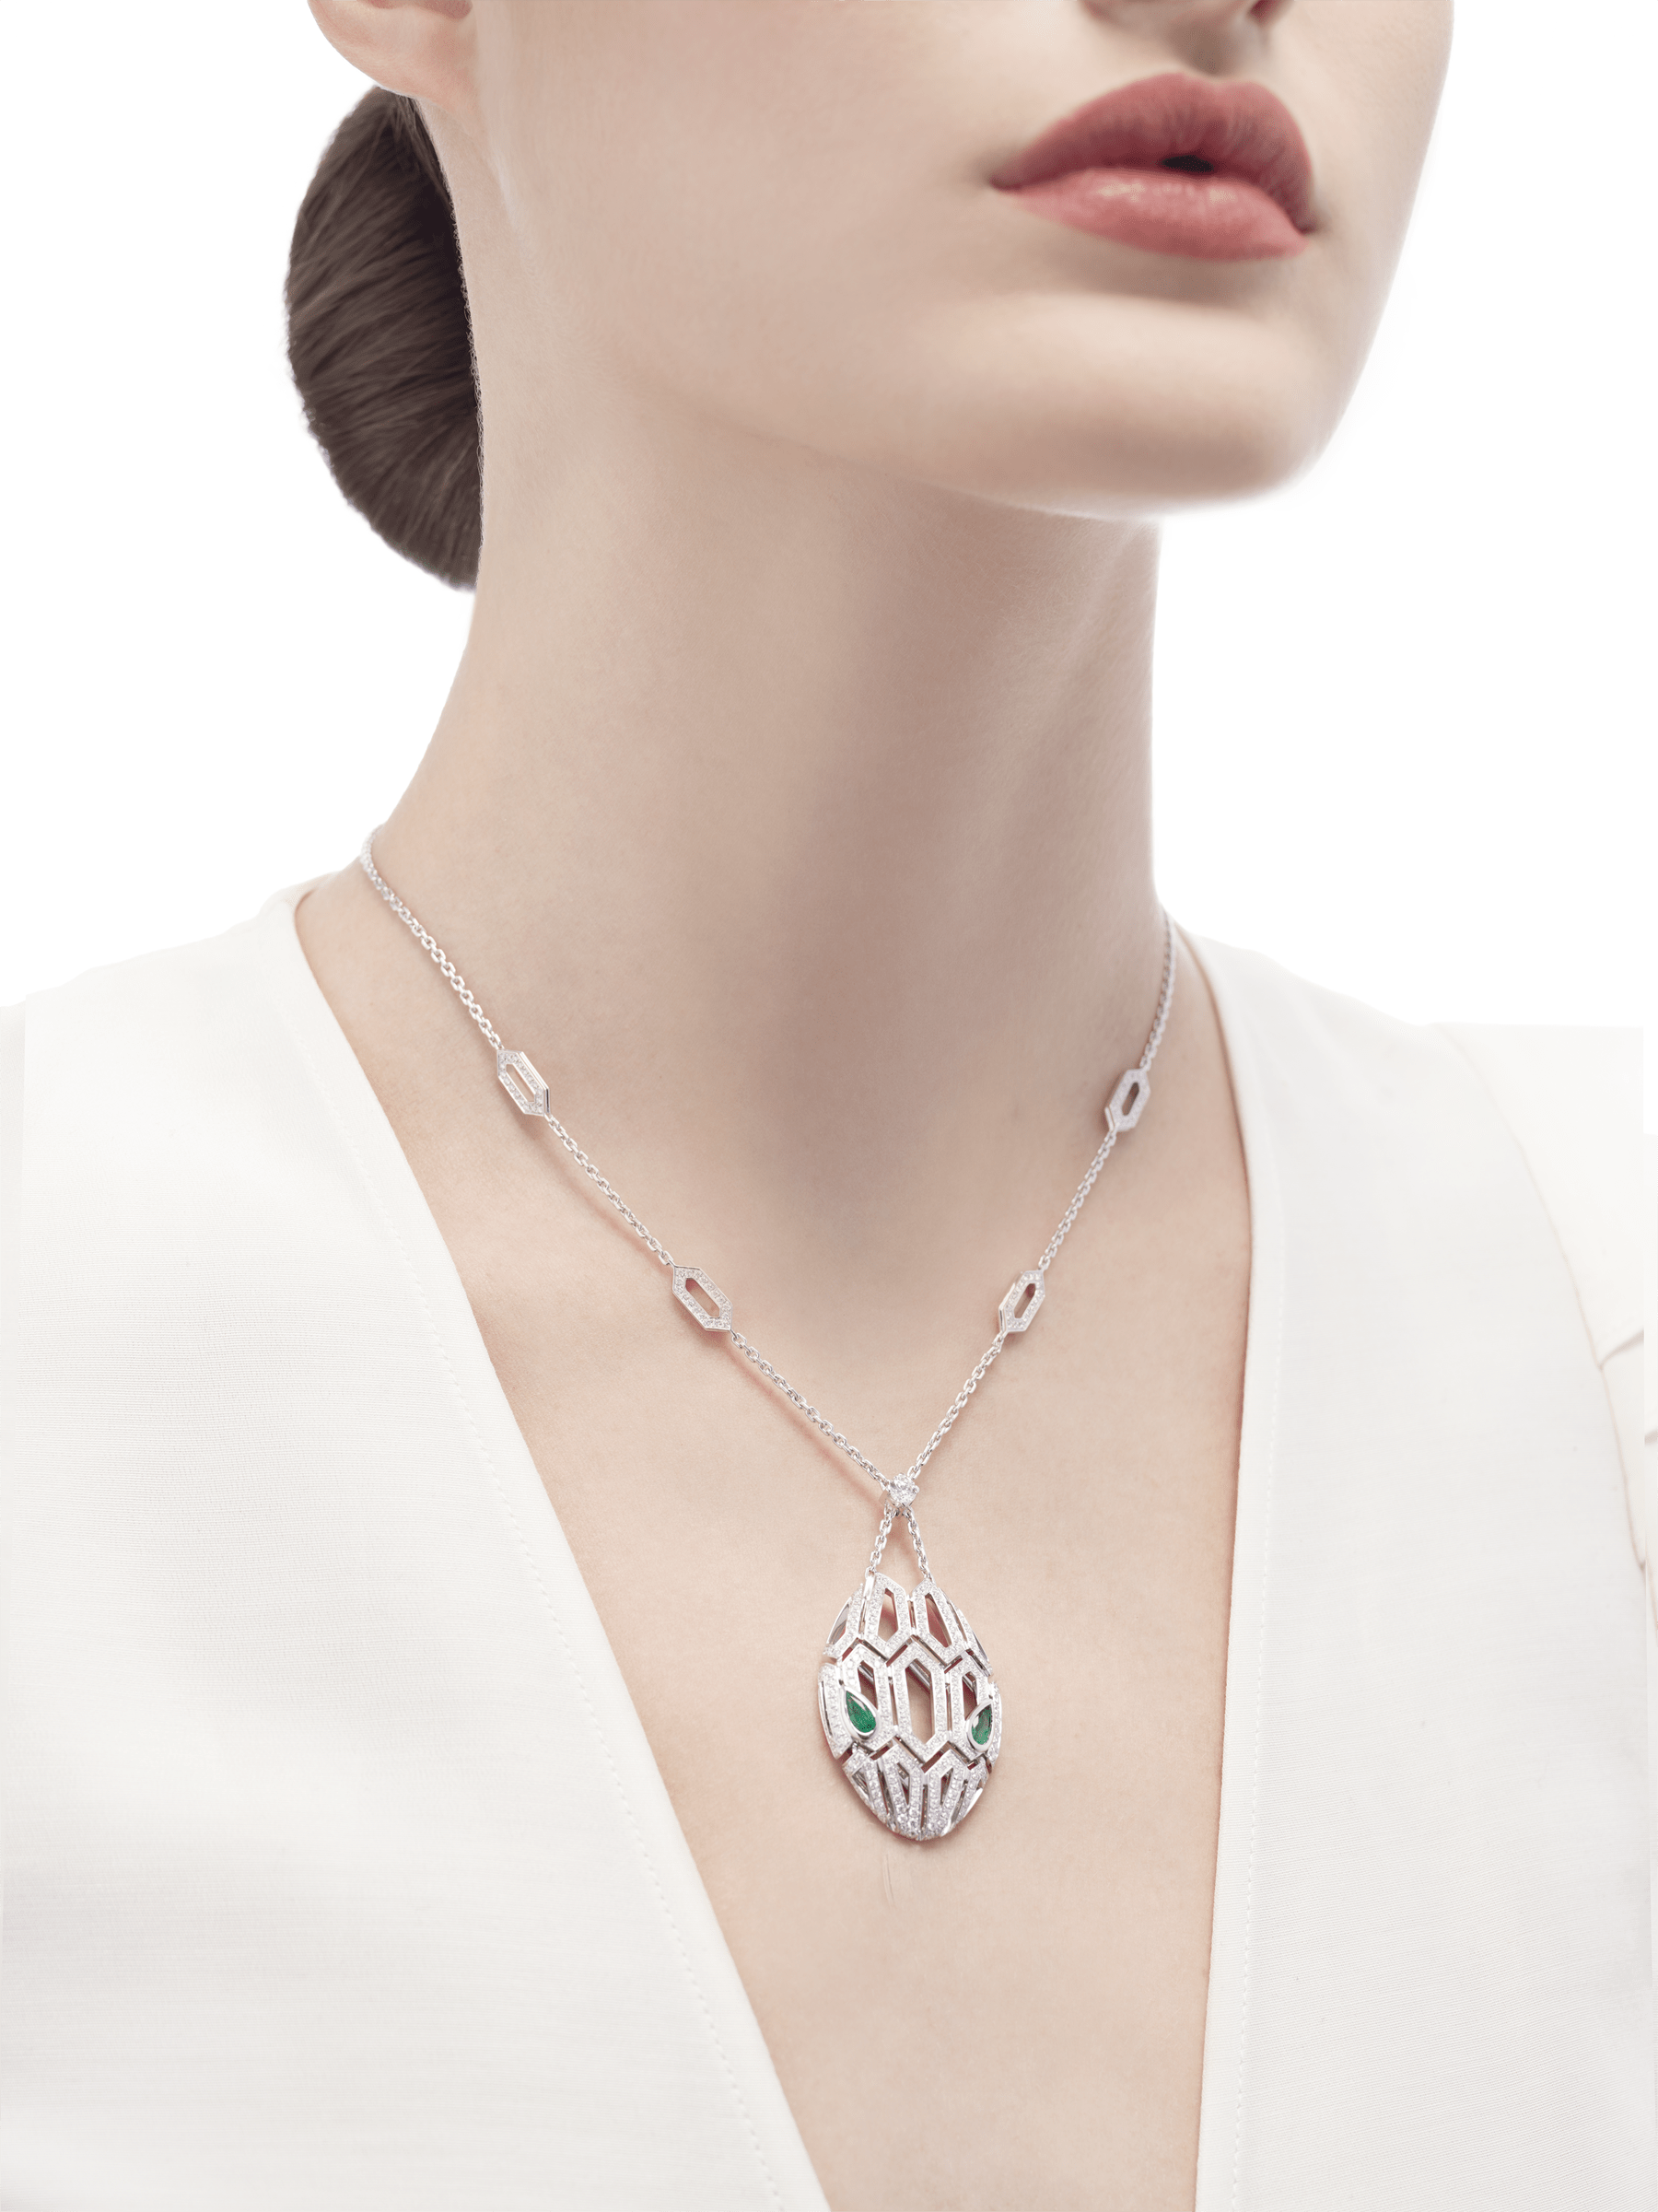 Serpenti necklace in 18 kt white gold, set with emerald eyes and pavé diamonds both on the chain and the pendant. 352752 image 4